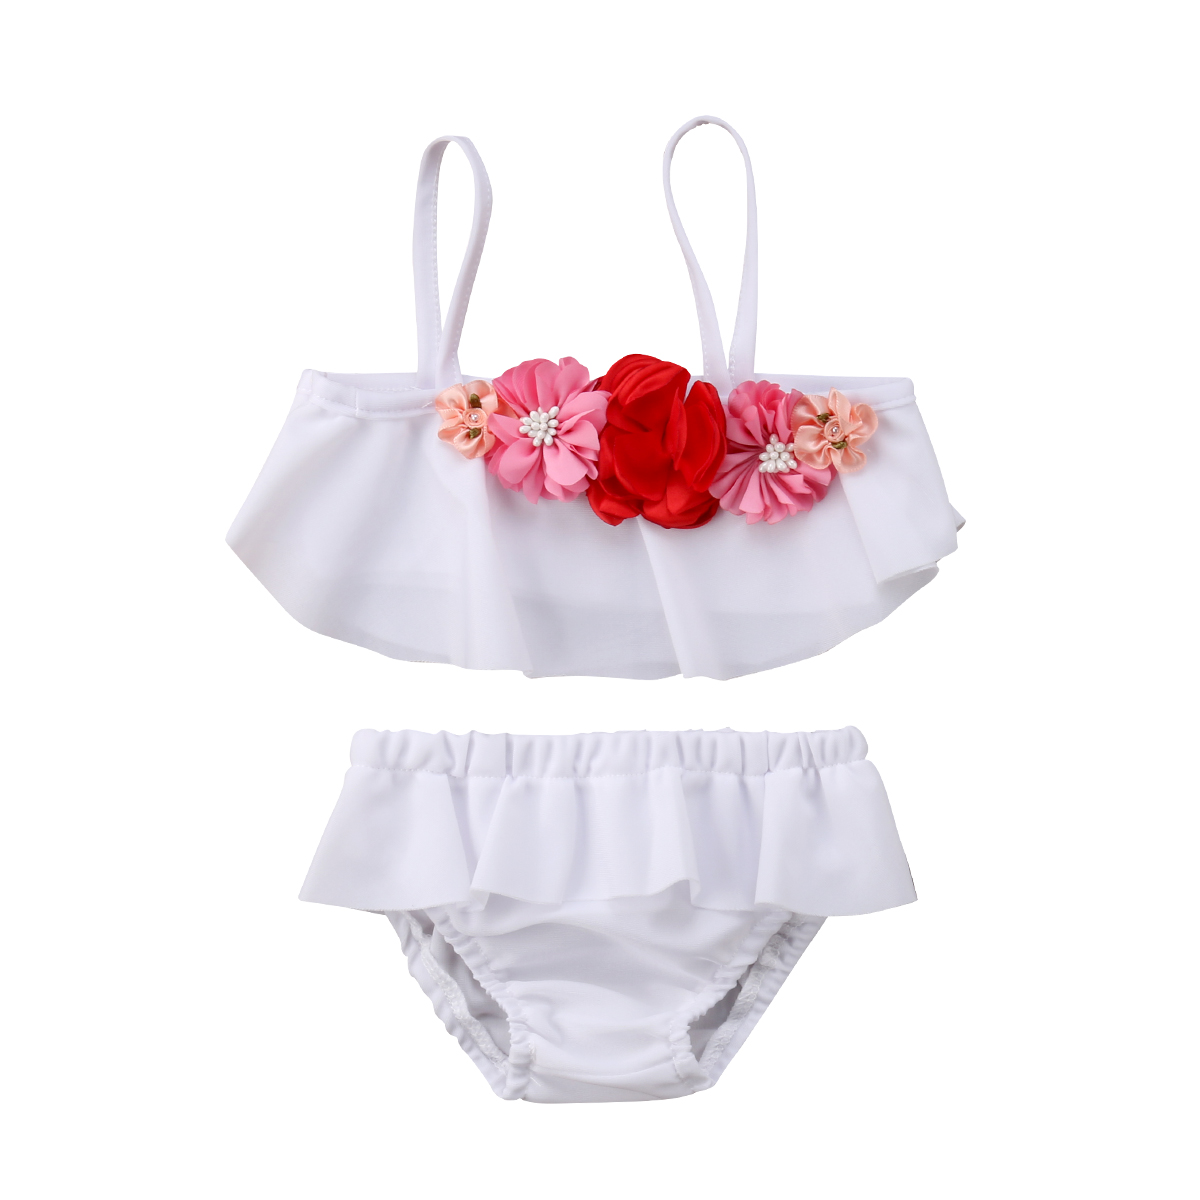 2Pcs Summer Kid Baby Girl Floral White Swimming Bikini Clothing Set Swimsuit Swimwear Bathing Suit